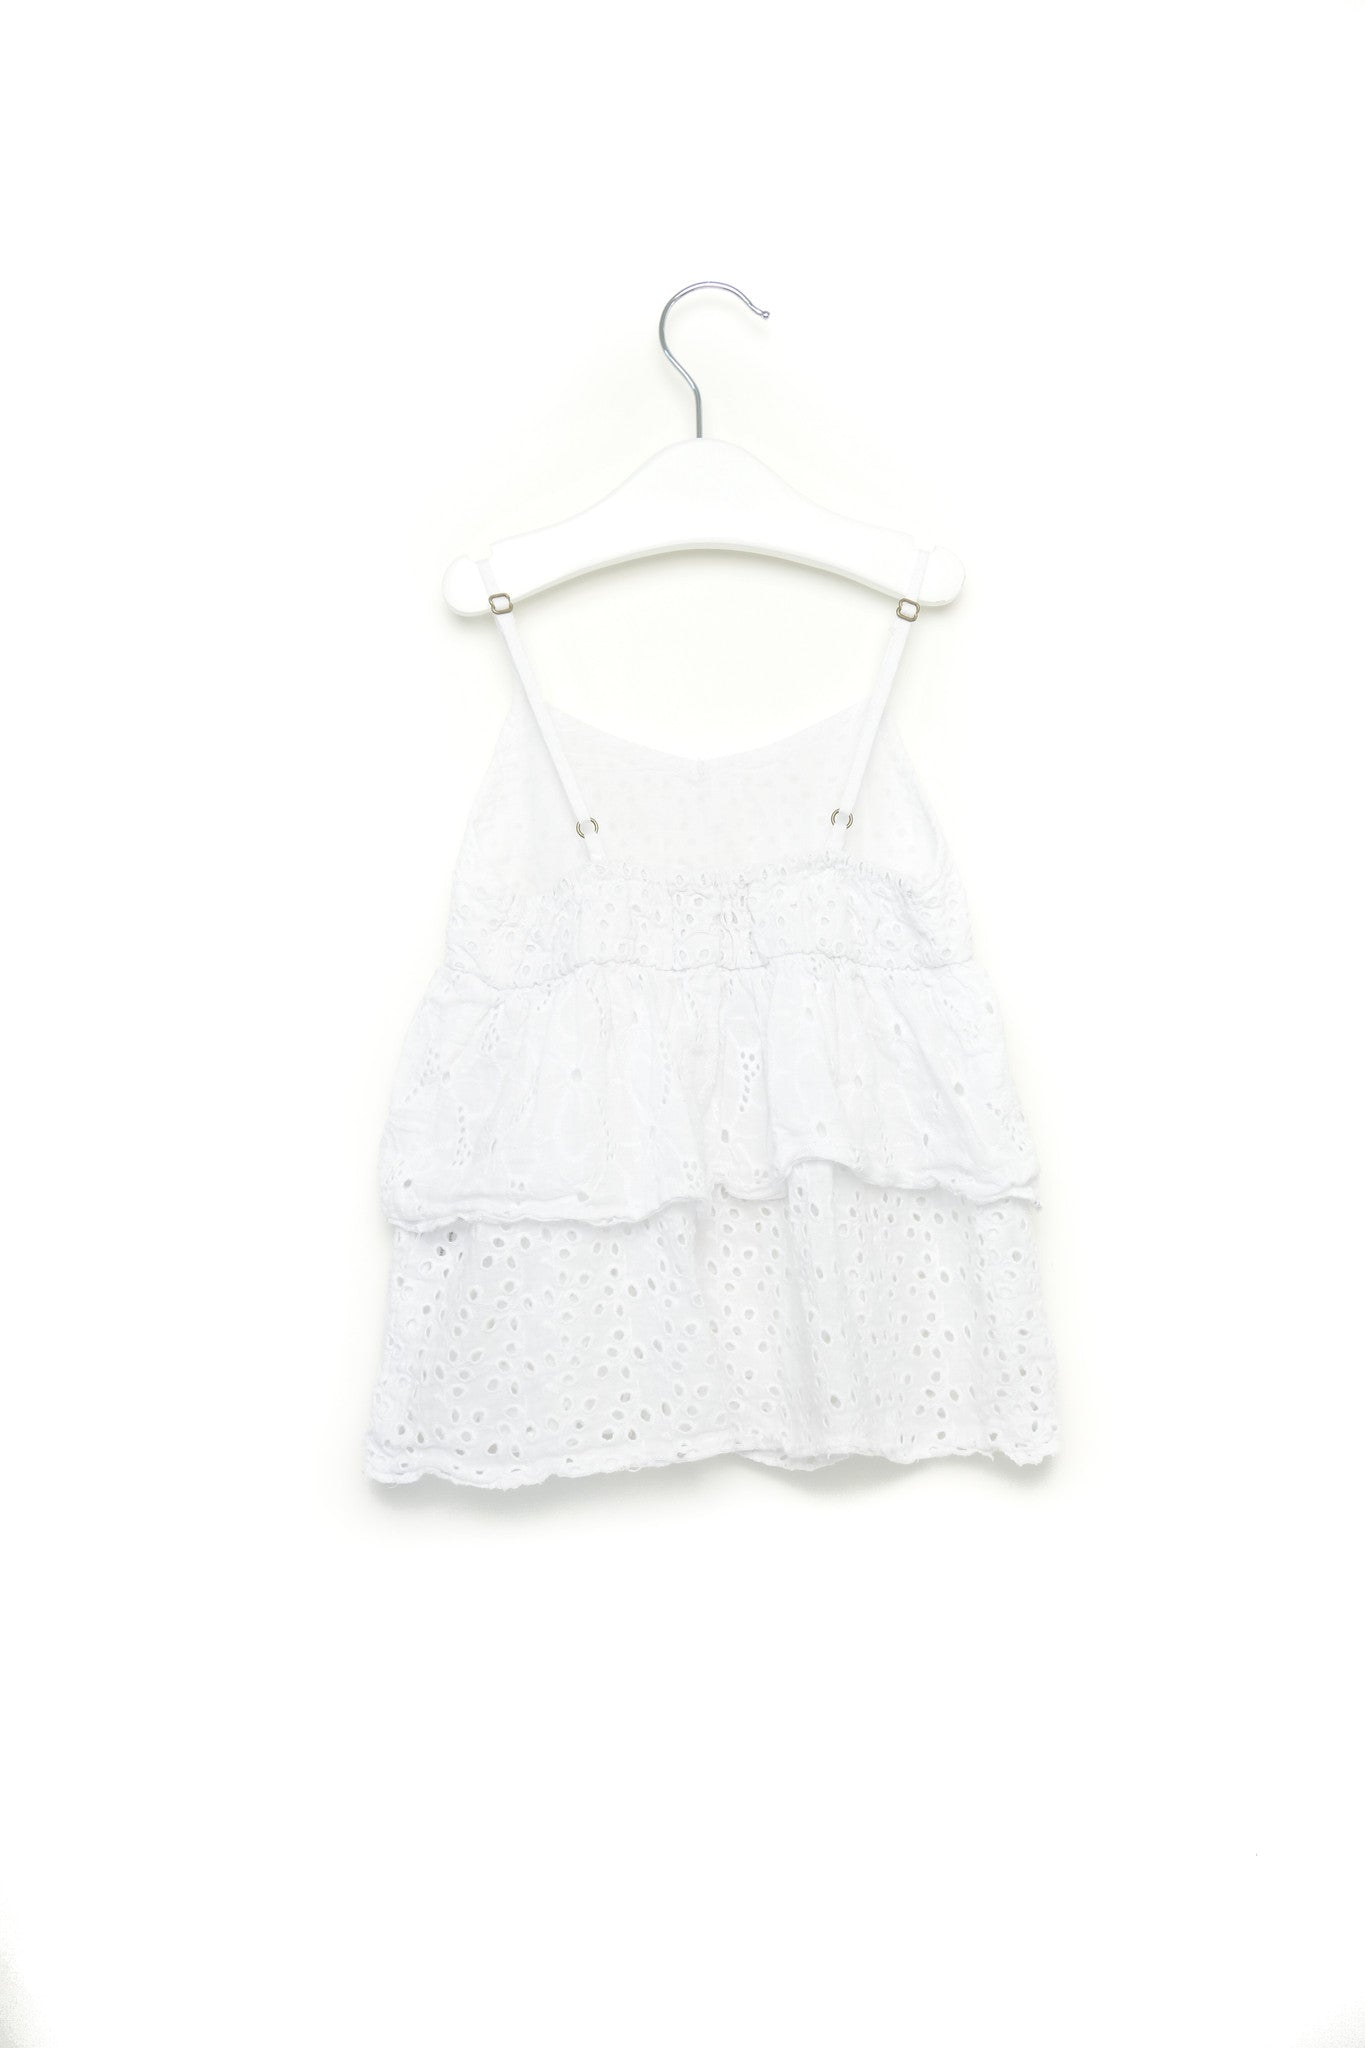 10001508~Top 2-3T, Peek at Retykle - Online Baby & Kids Clothing Up to 90% Off